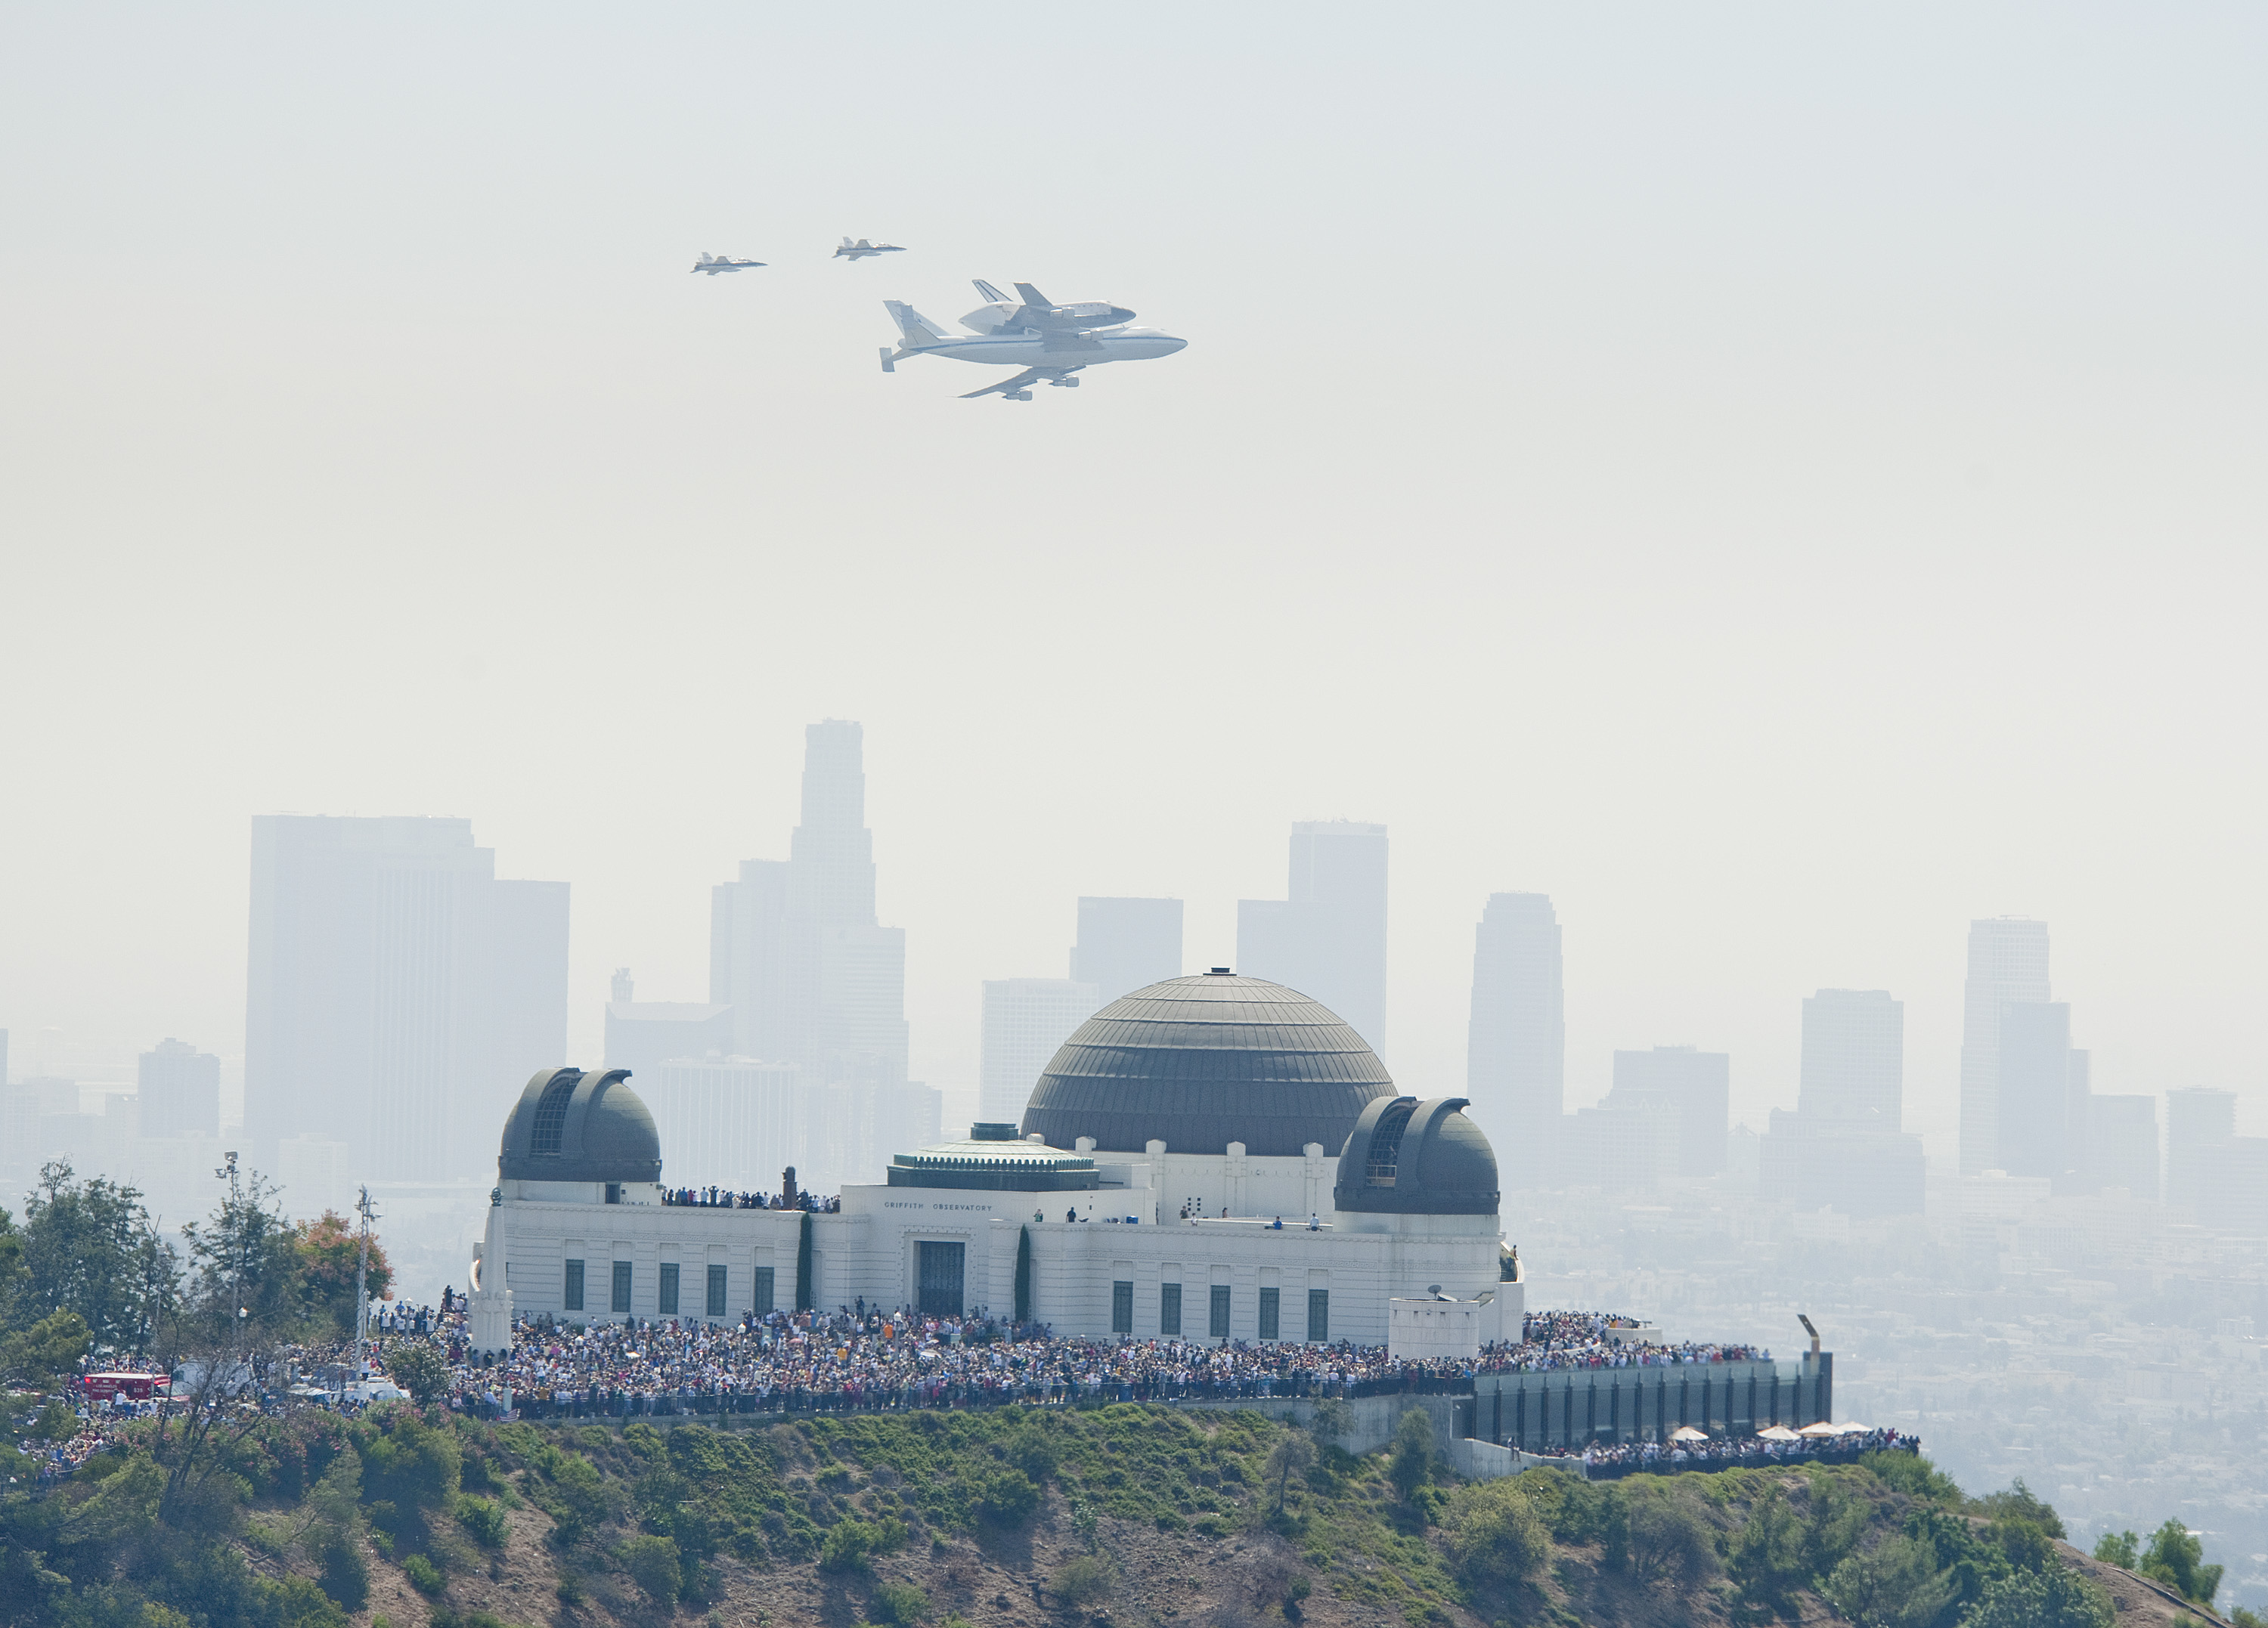 Nasa griffith observatory the spot for endeavour flyby thousands of spectators gathered at griffith observatory in griffith park to catch a glimpse of space sciox Gallery